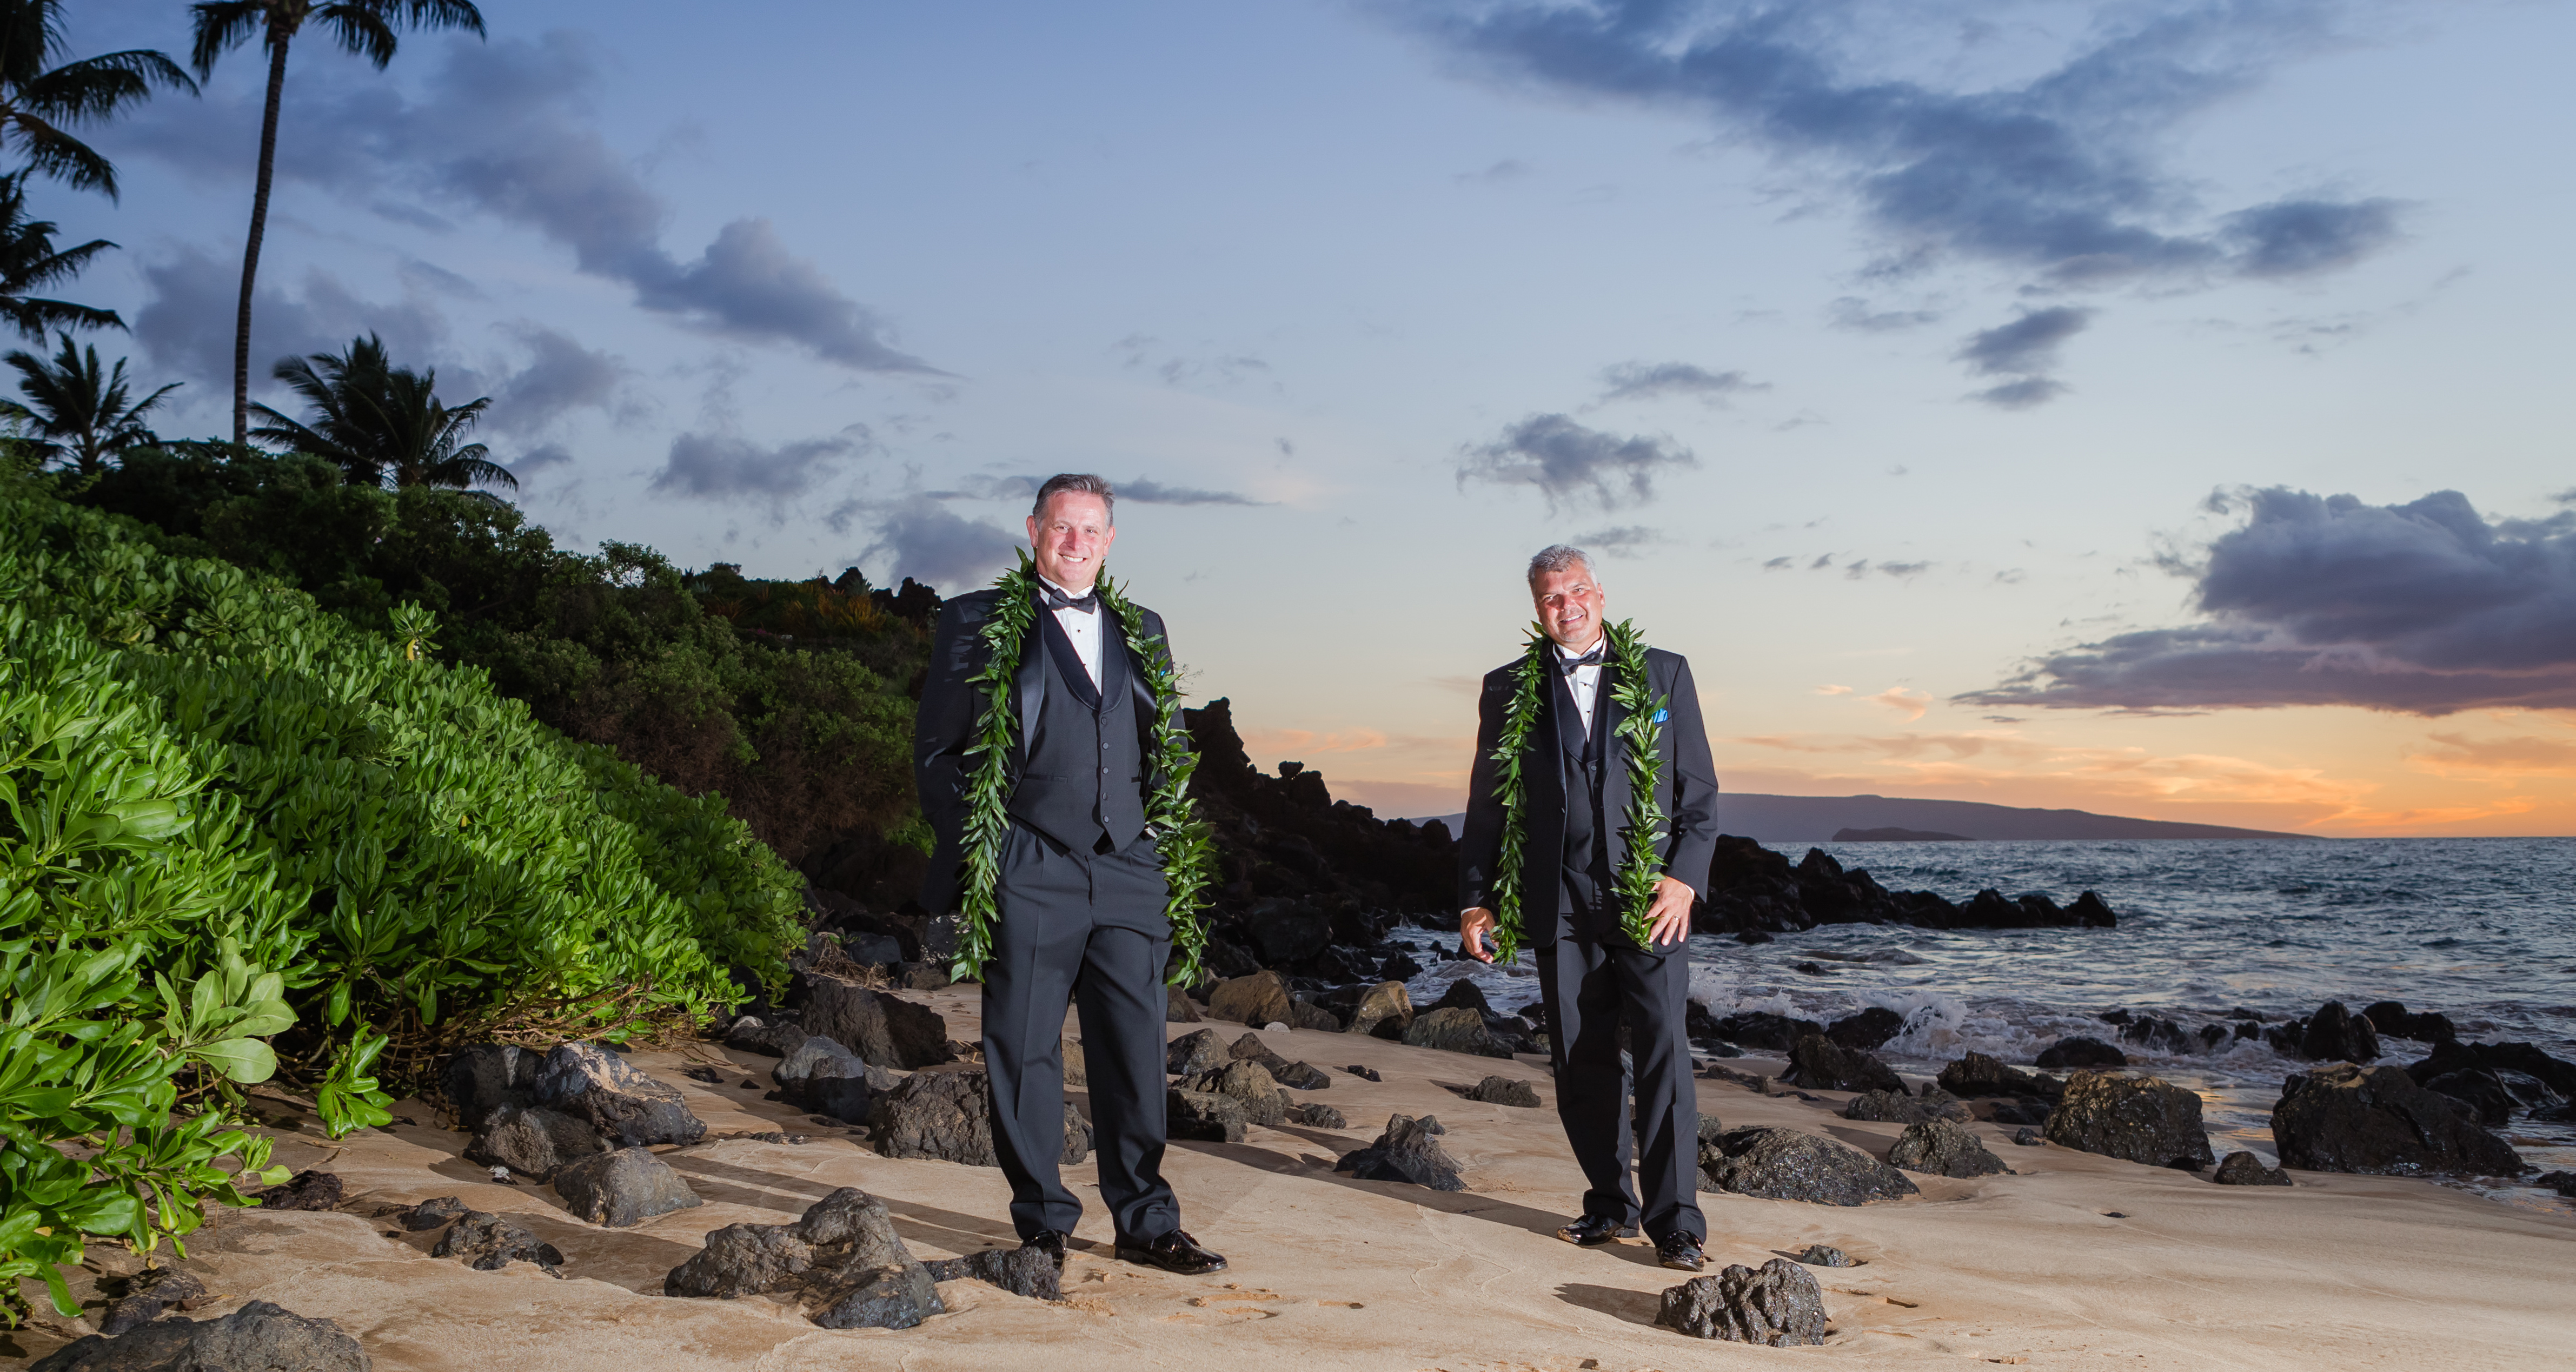 Gay weddings in Hawaii